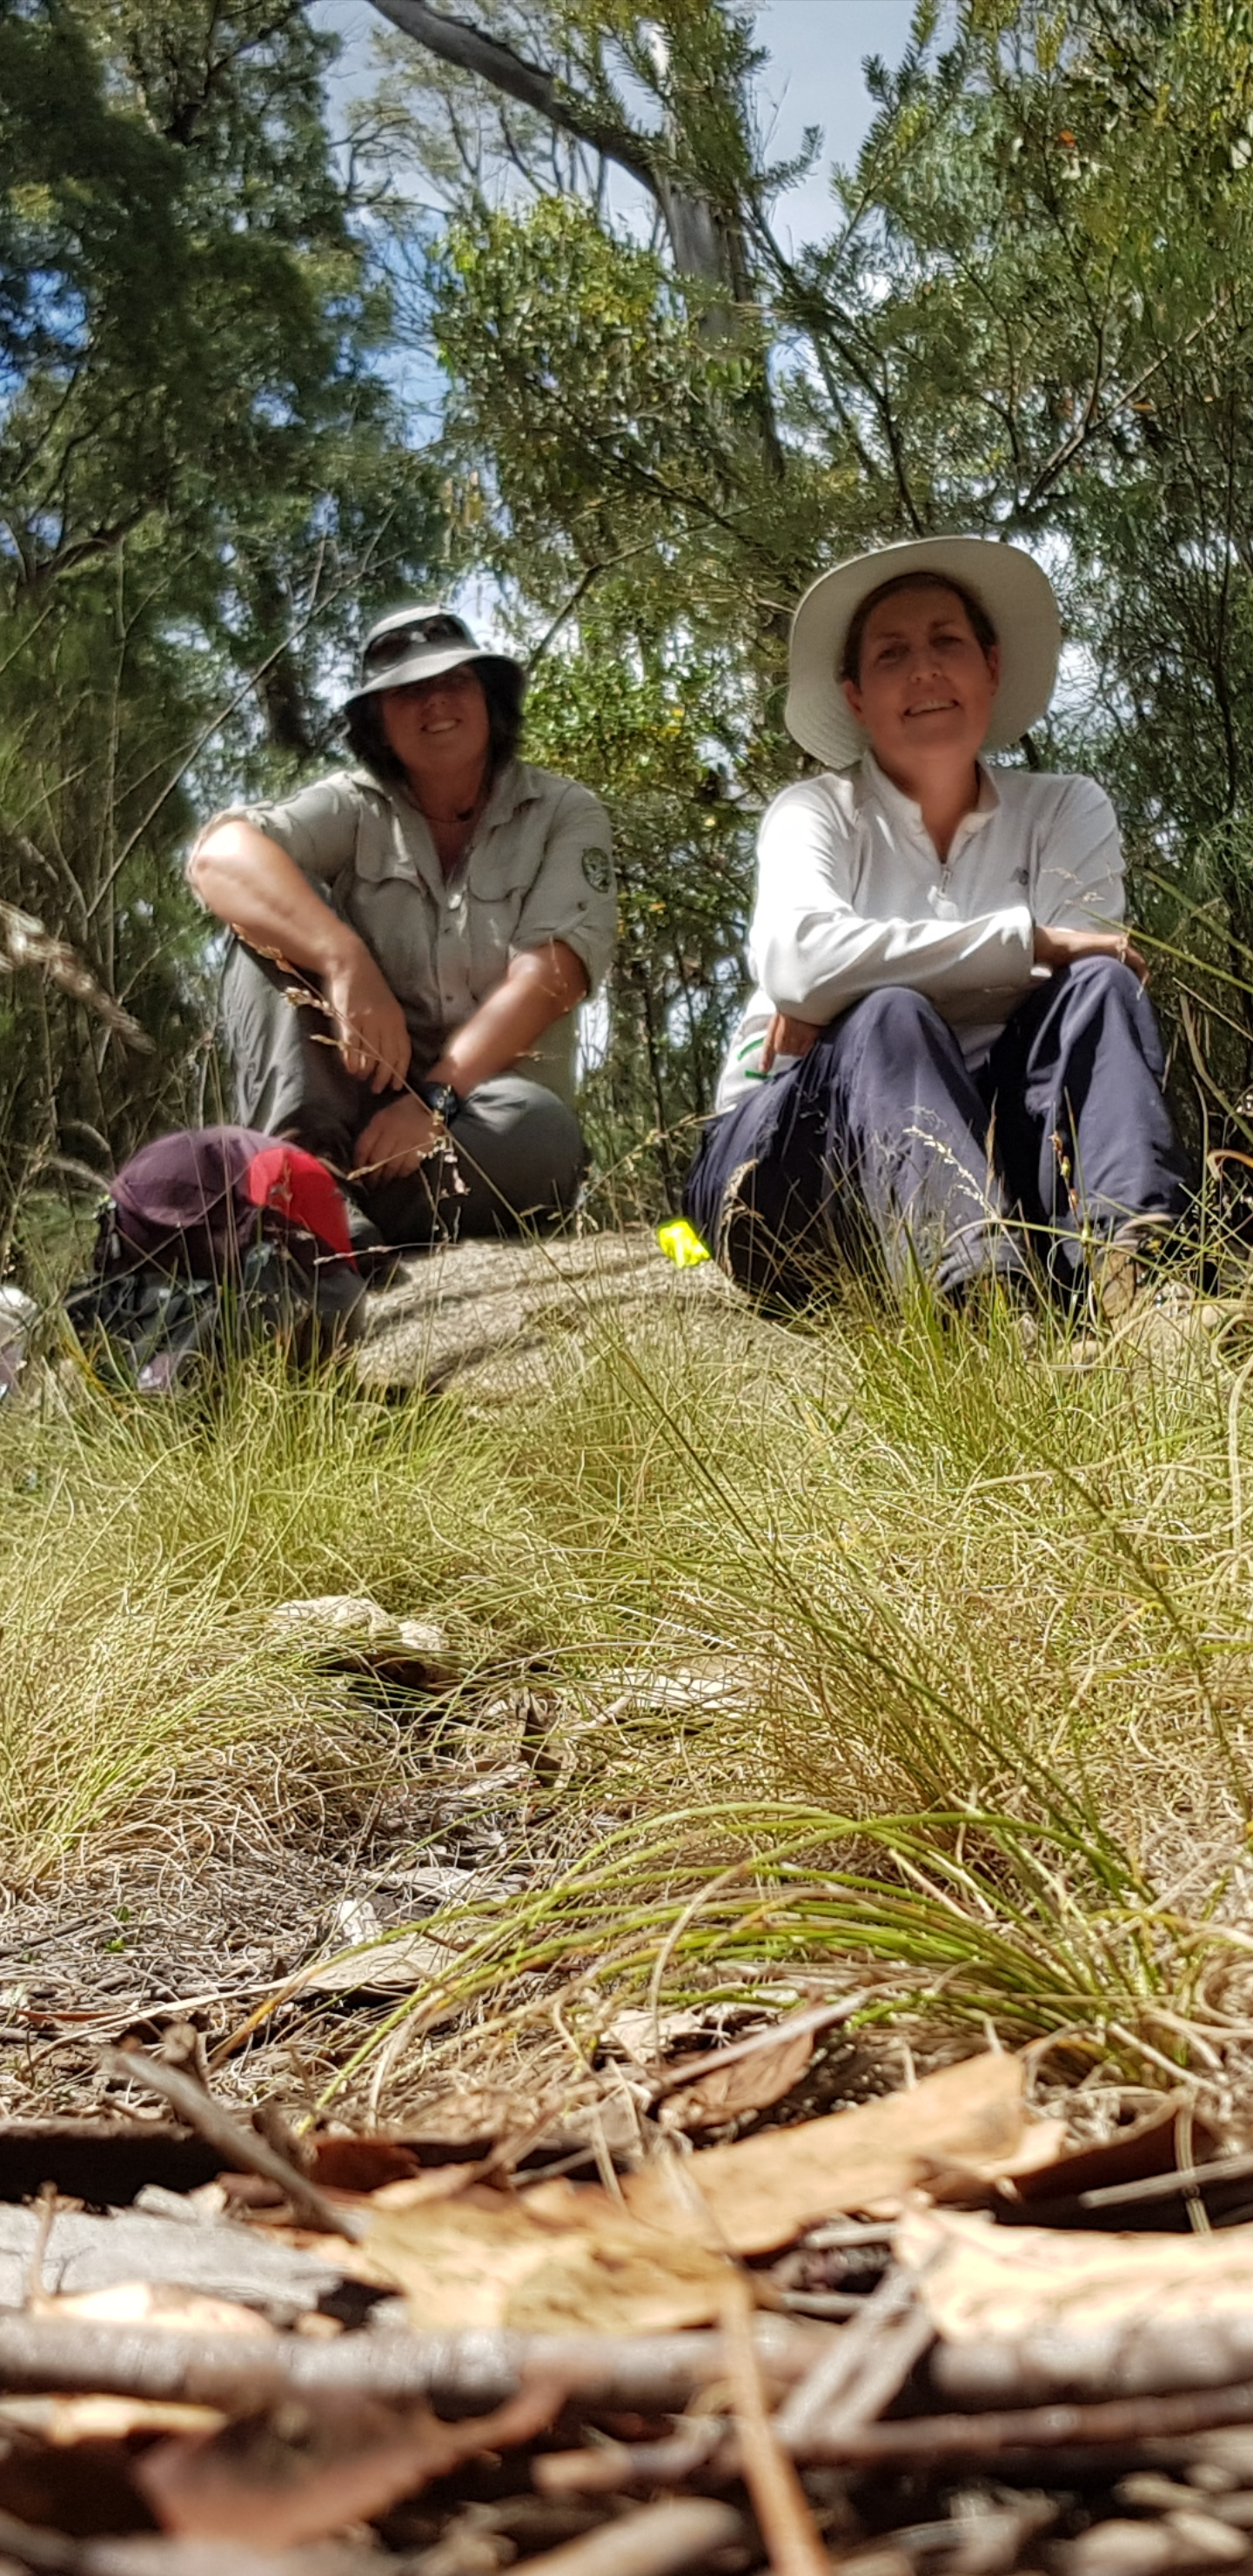 Terra Roam and Kelli Jackson (ACT Women's Adventure group leader and around the world unicyclist) out on an overnight walk in Namadgi National Park.